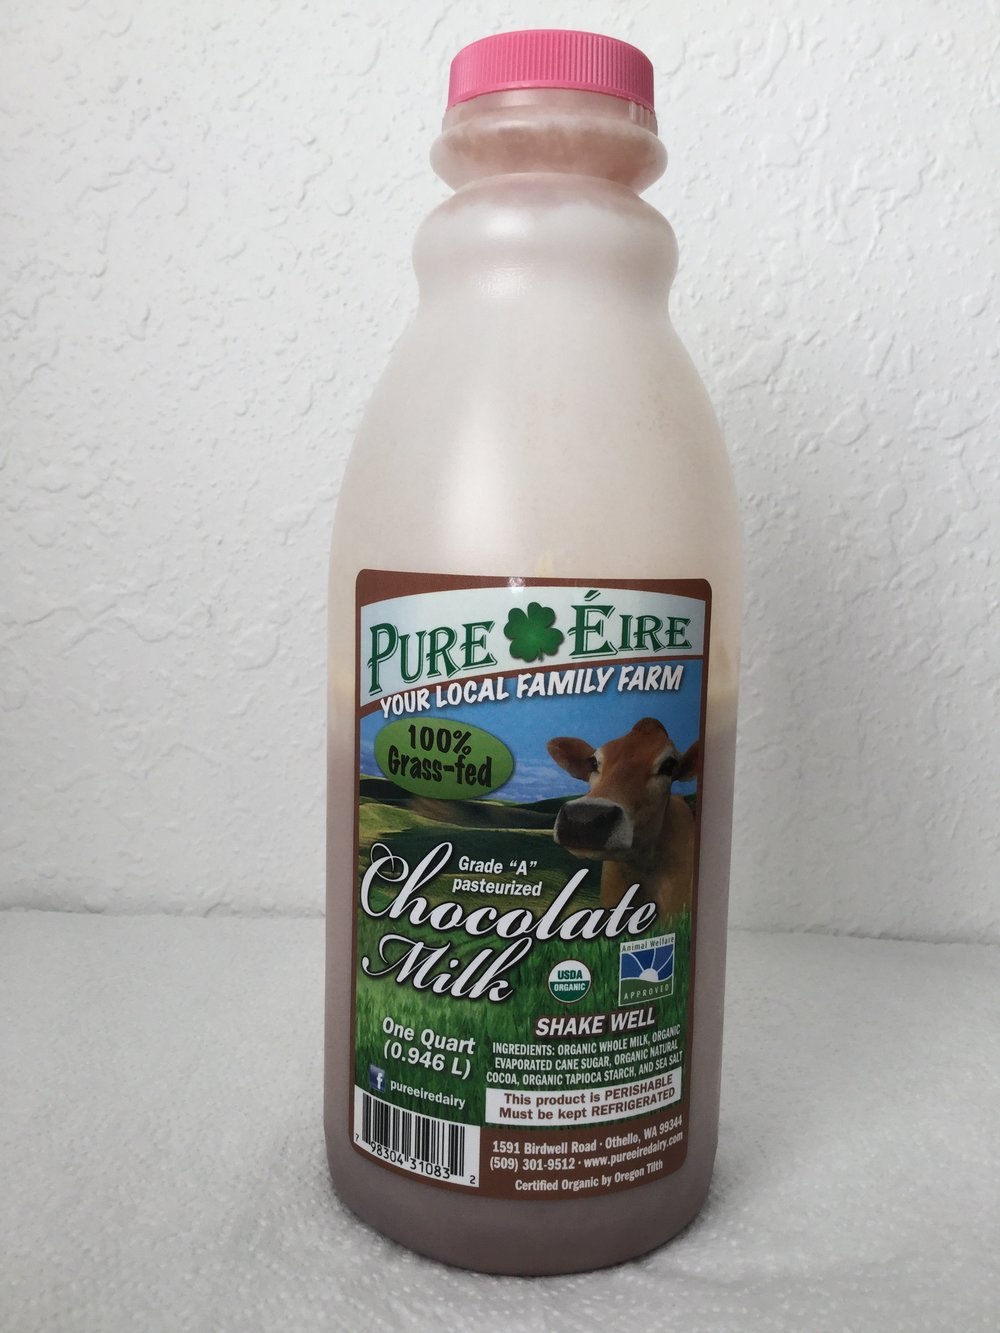 Pure Eire Organic Chocolate Milk Side 4